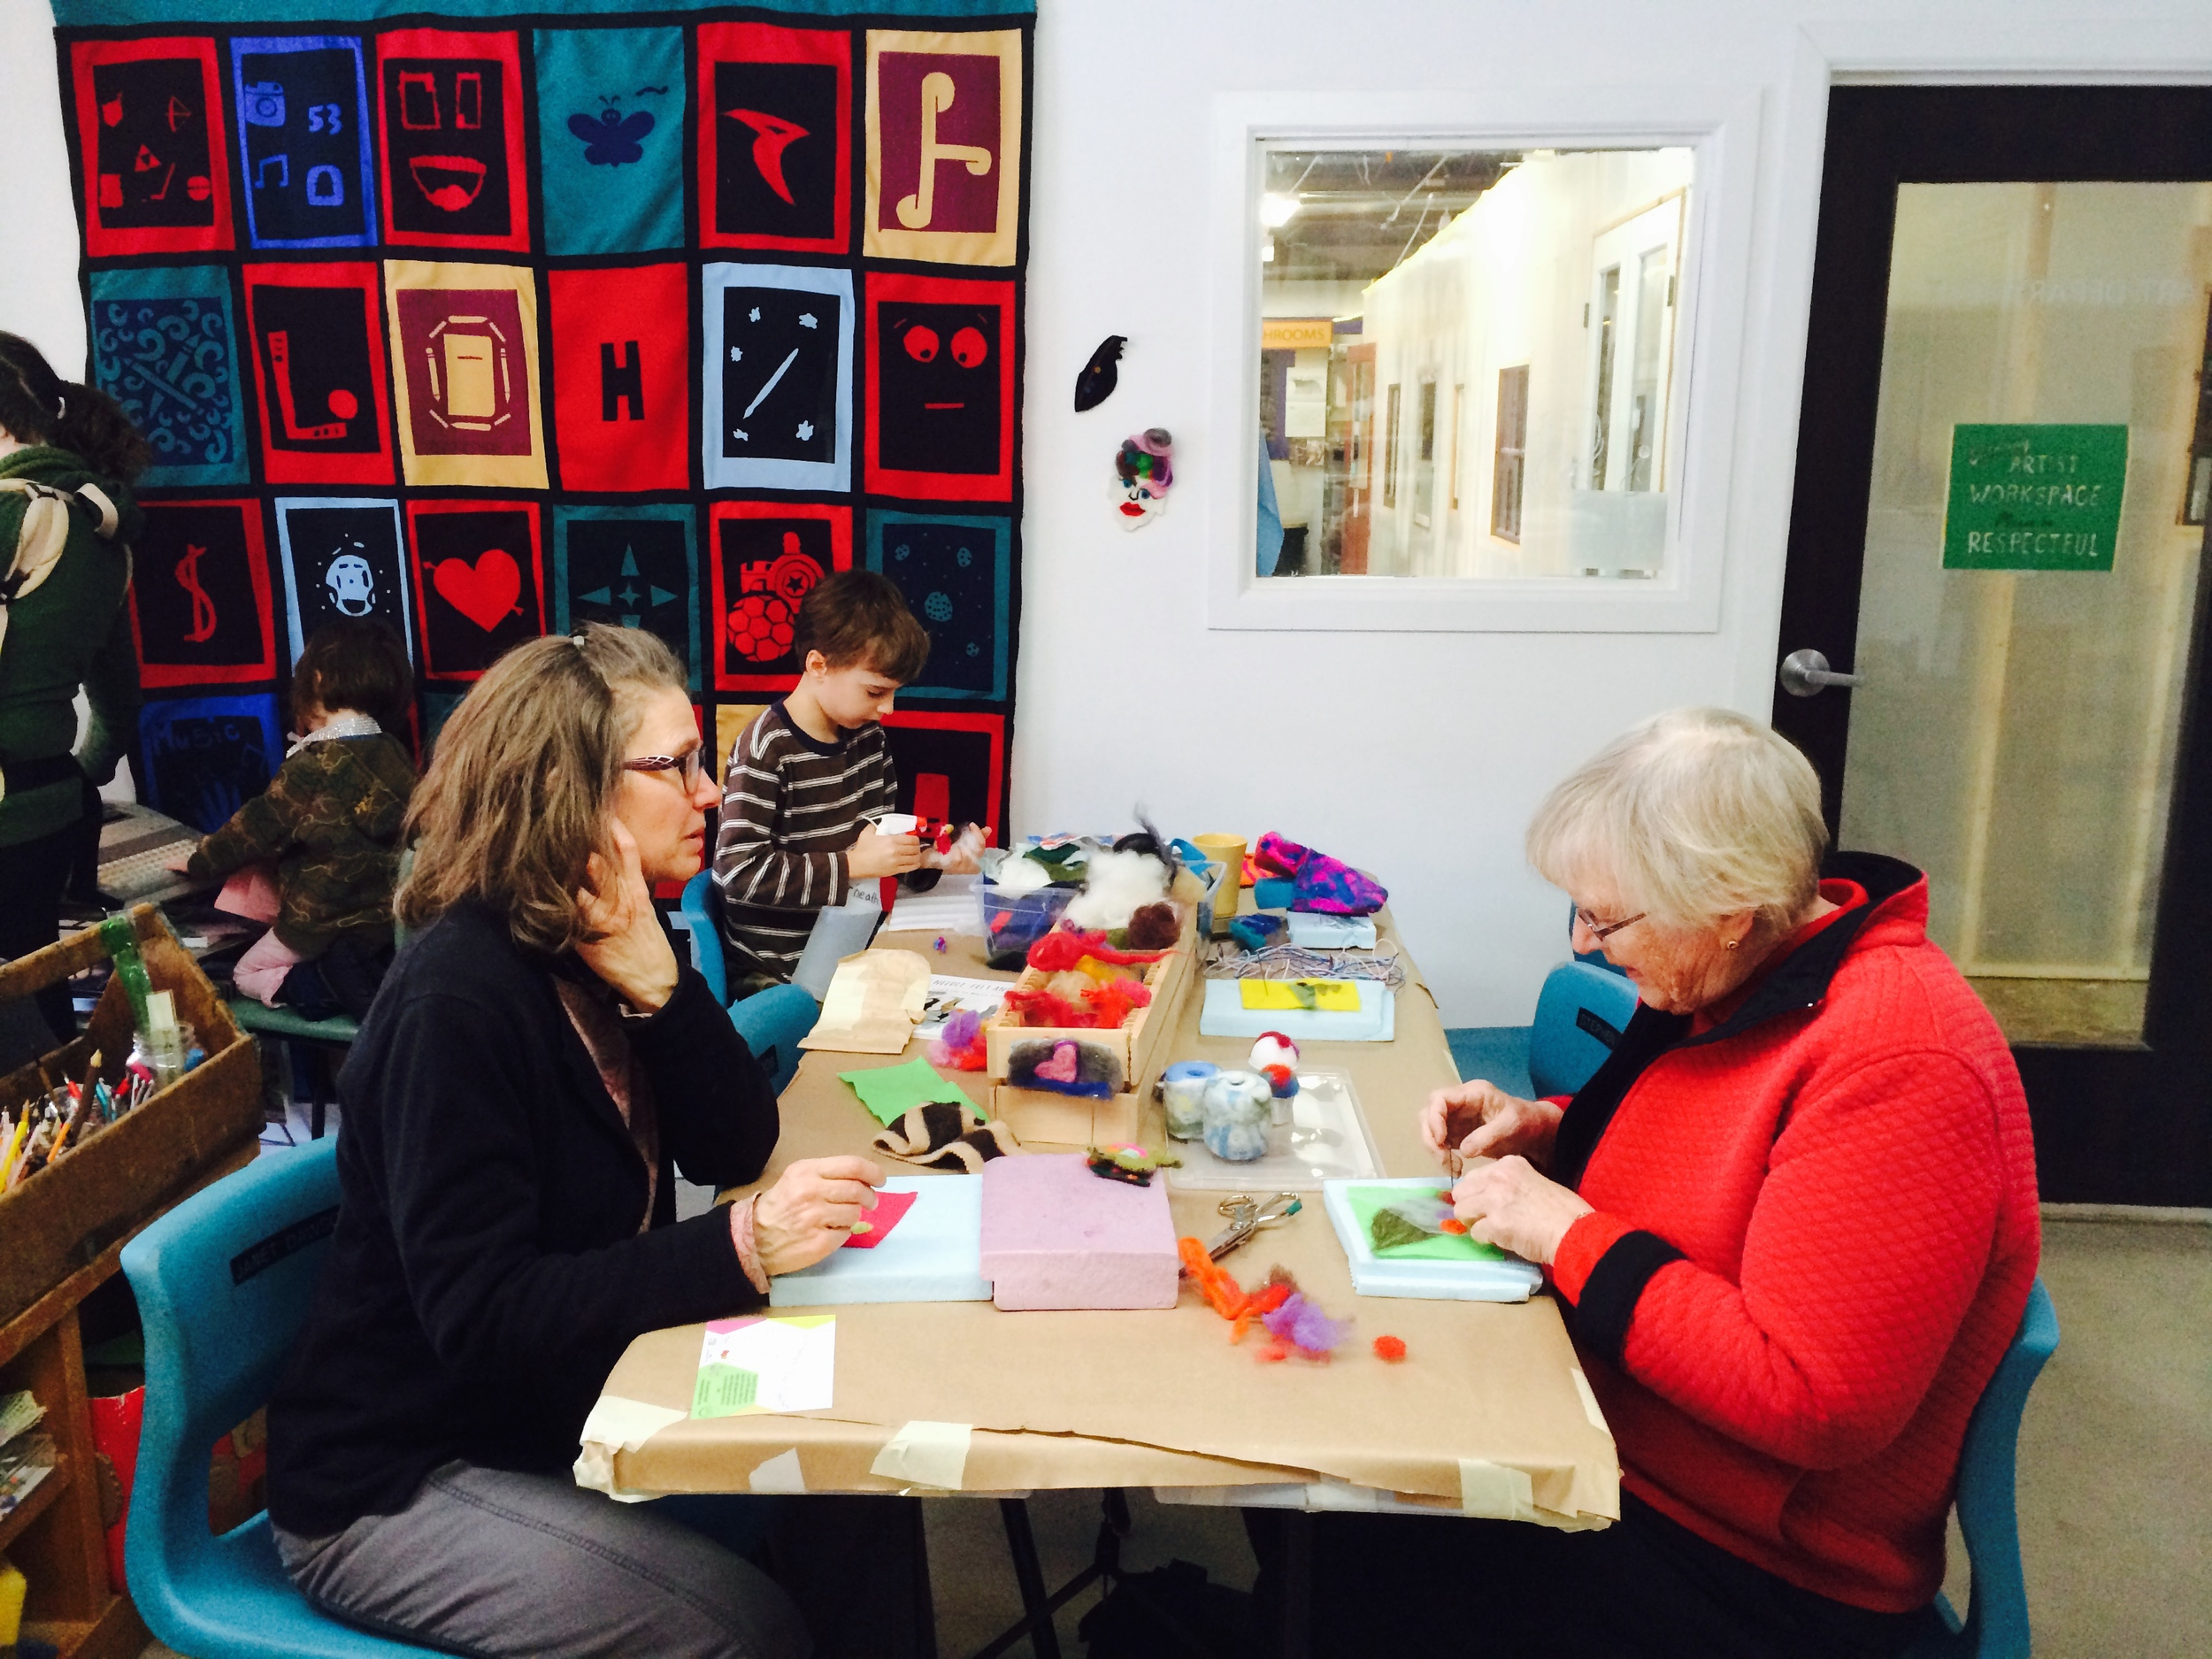 Needle felters and neighbours meeting for the first time. Sometimes the simple dialogue that surrounds an art technique allows people to feel at ease in a new space.